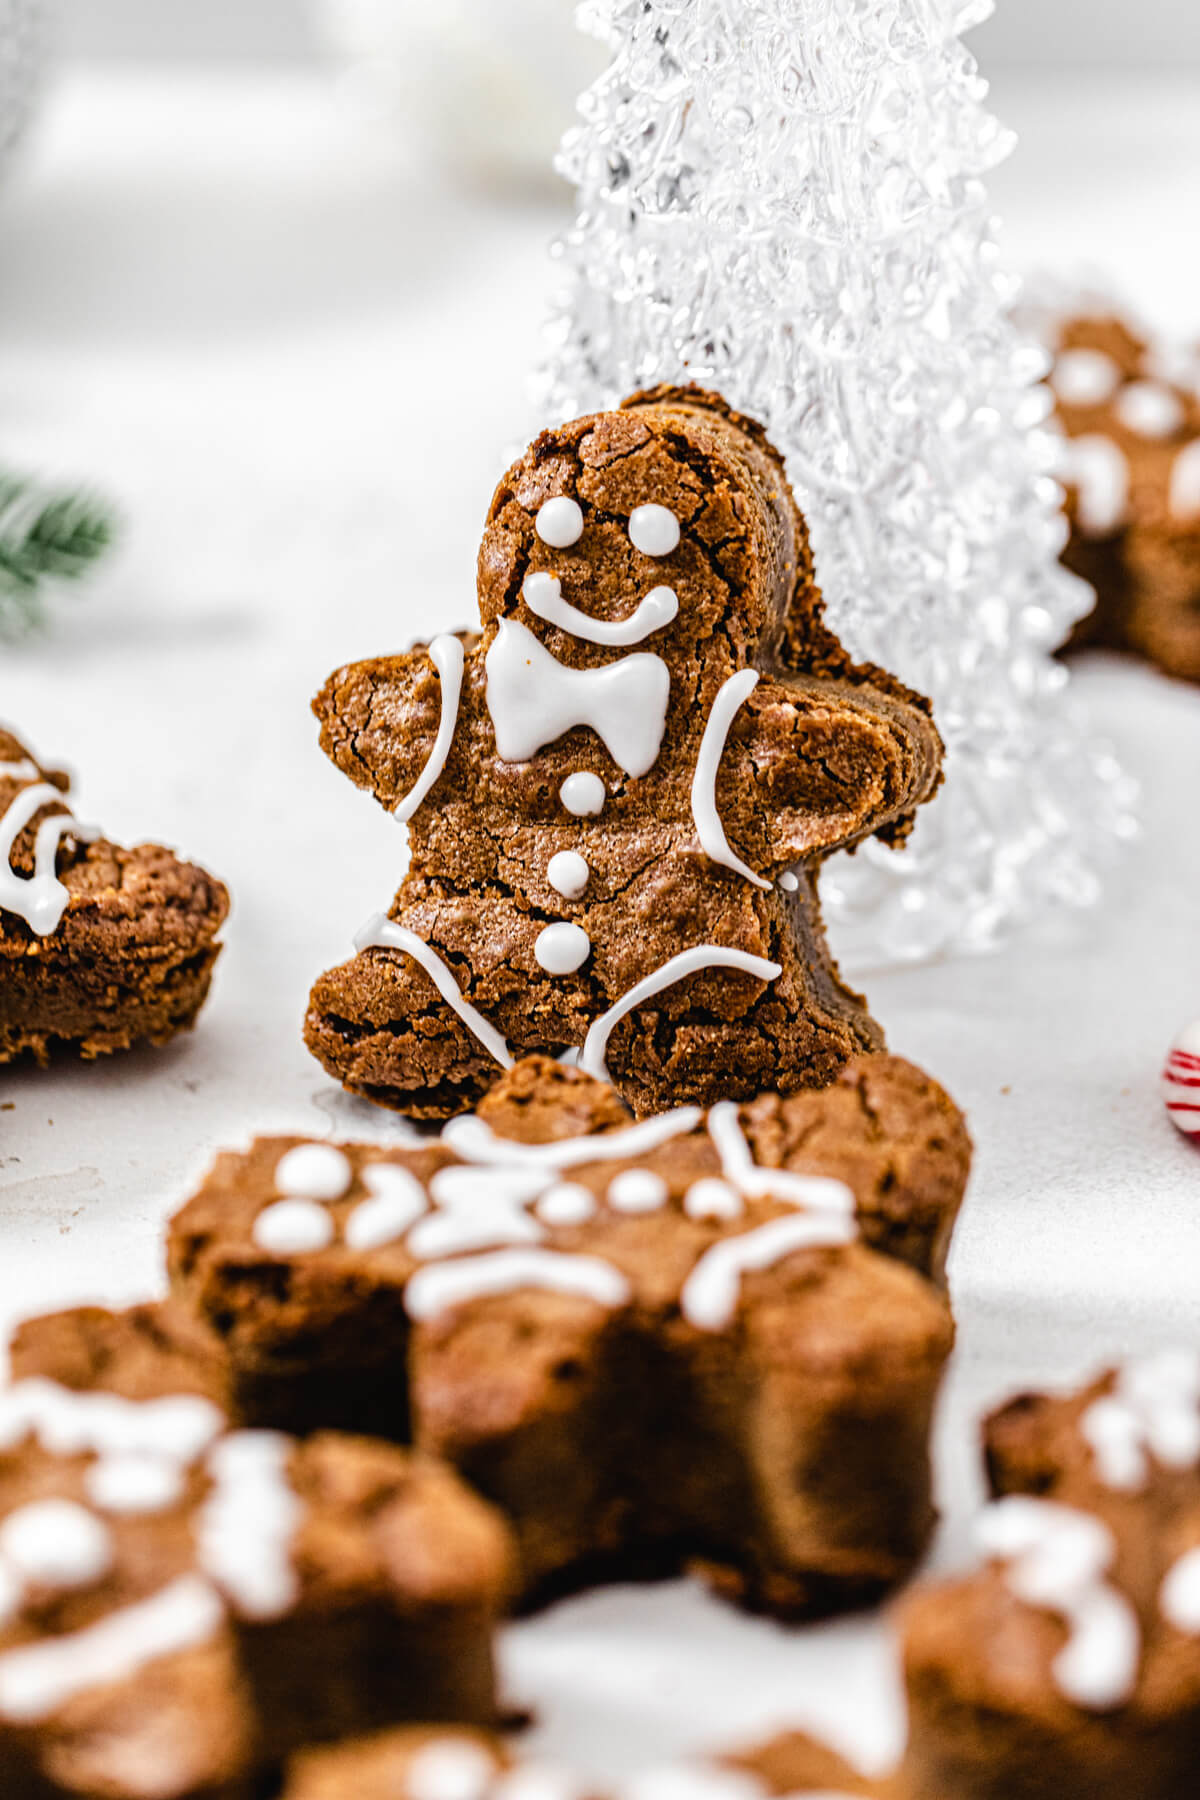 close up of gingerbread man propped onto glass Christmas tree